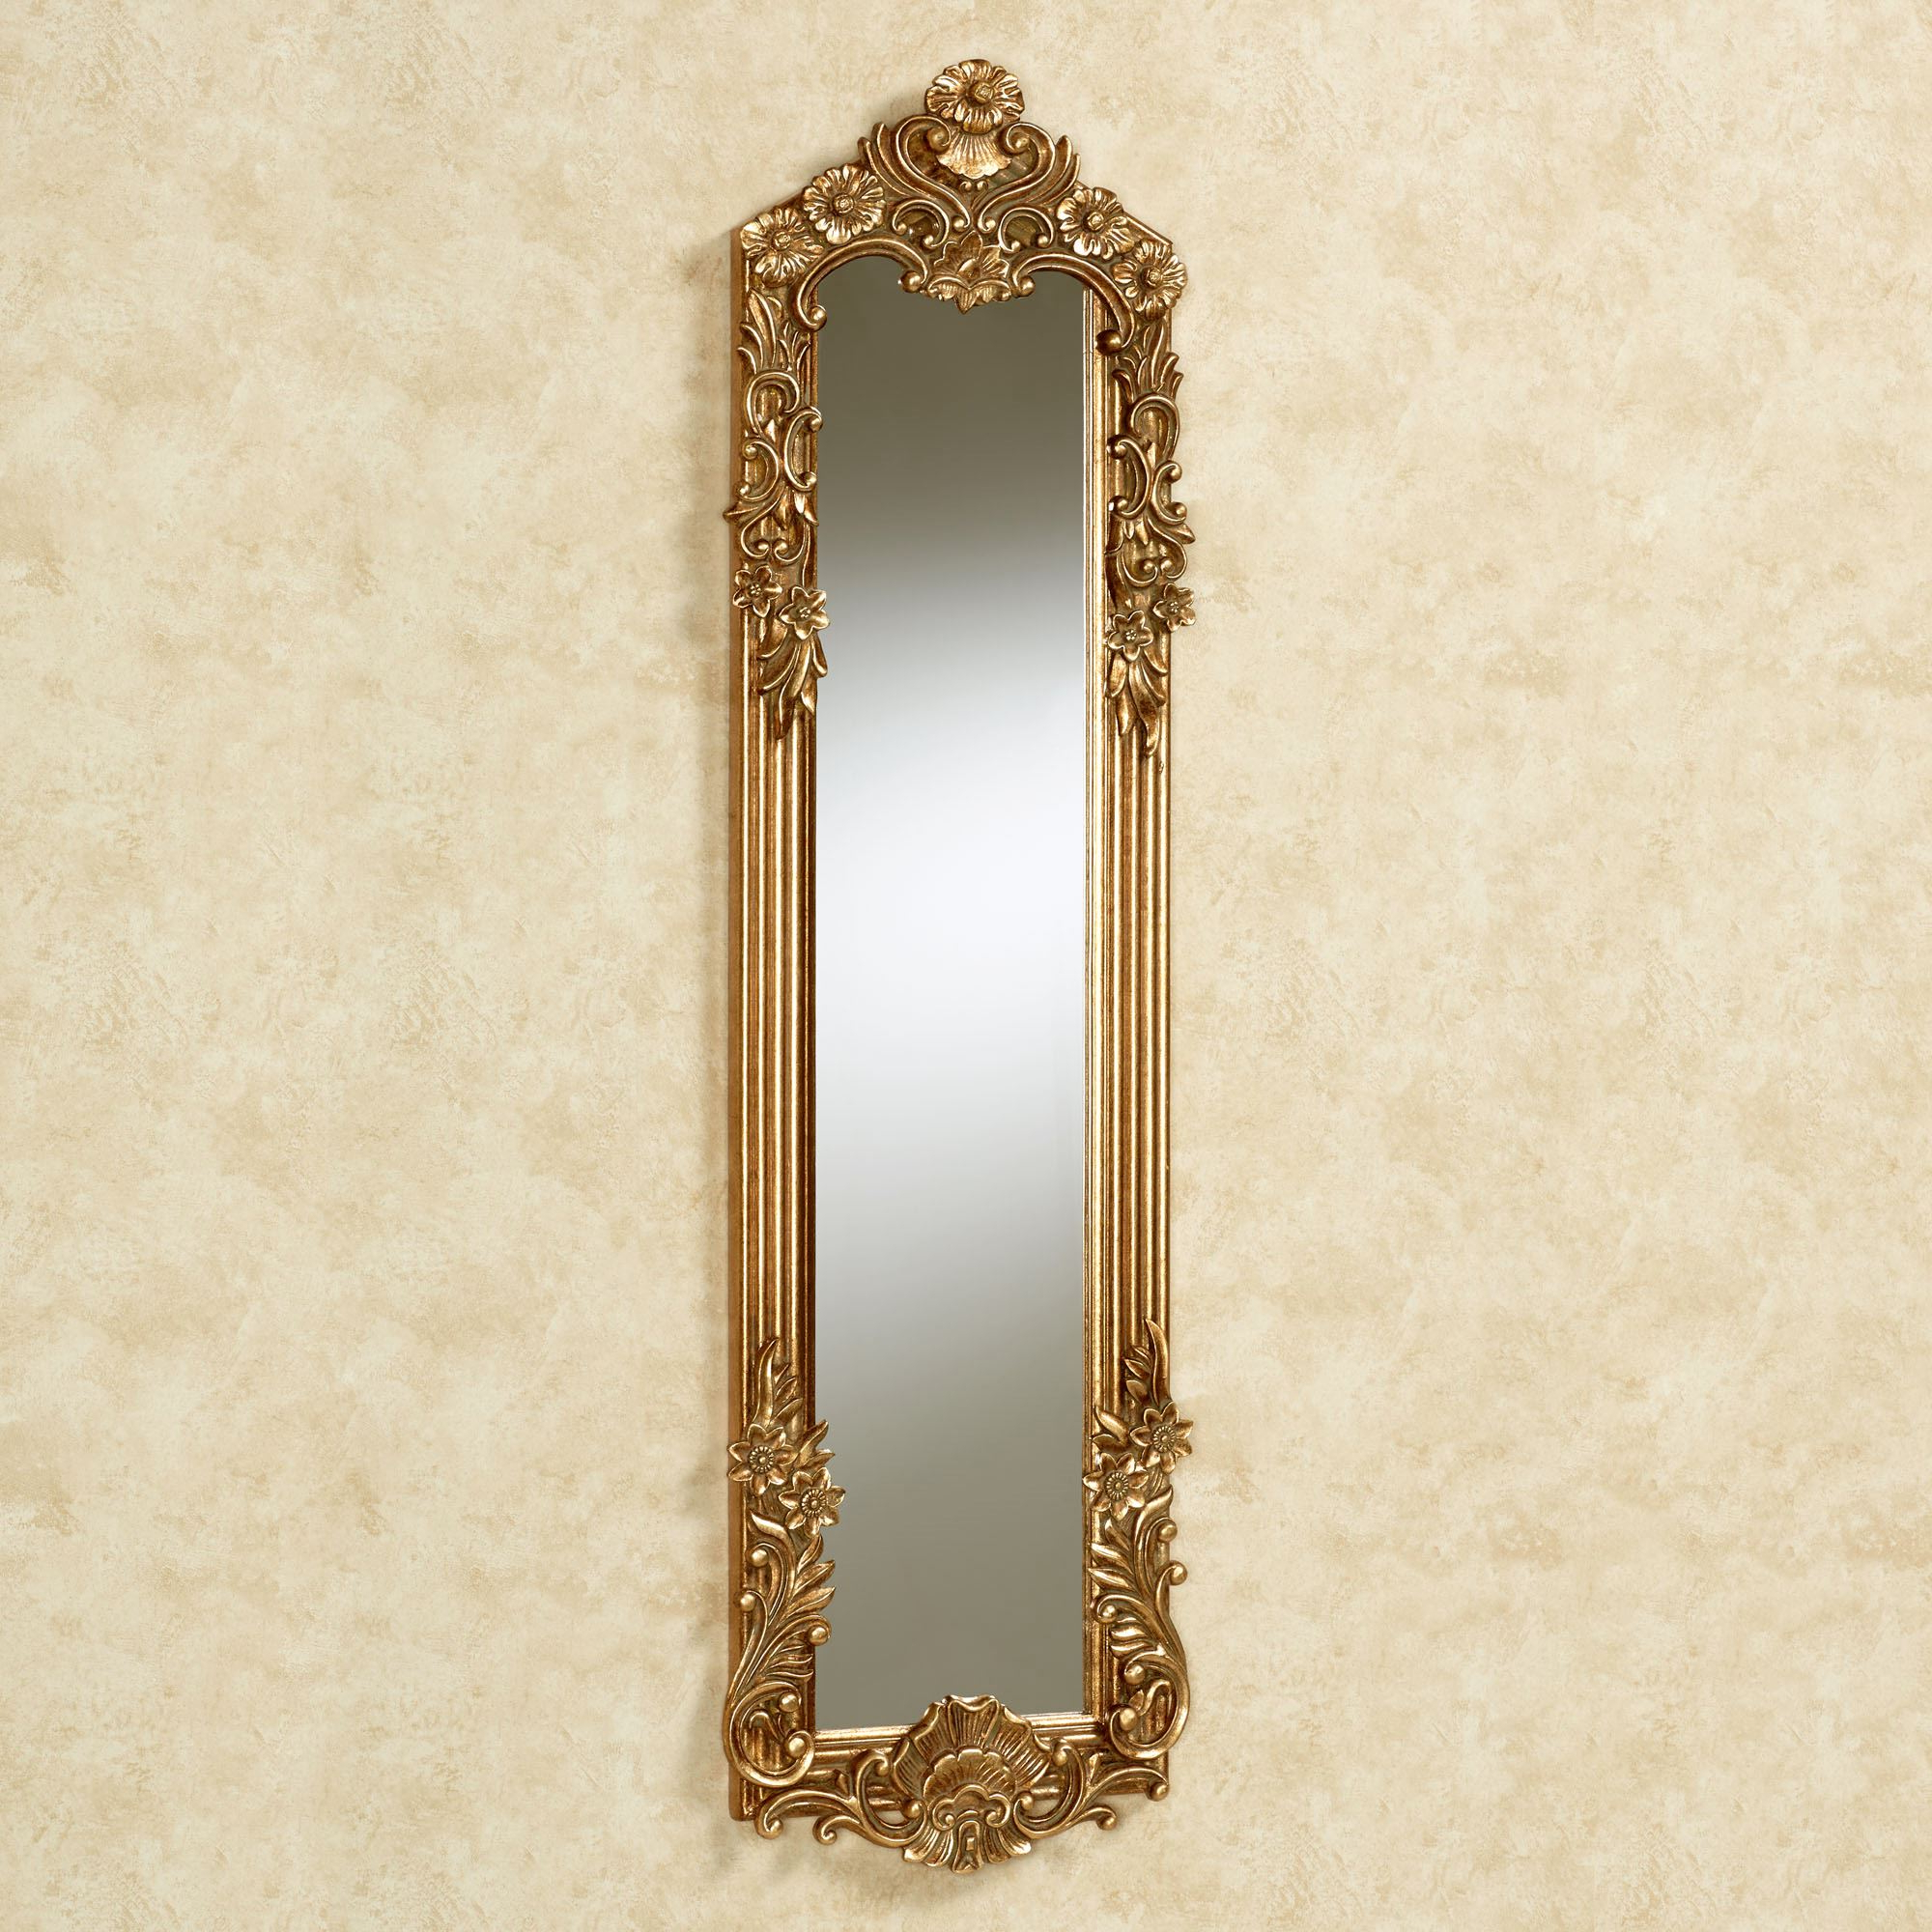 Gadsden Dark Gold Small Floral Wall Mirror Panel Throughout Most Popular Small Gold Wall Mirrors (View 8 of 20)